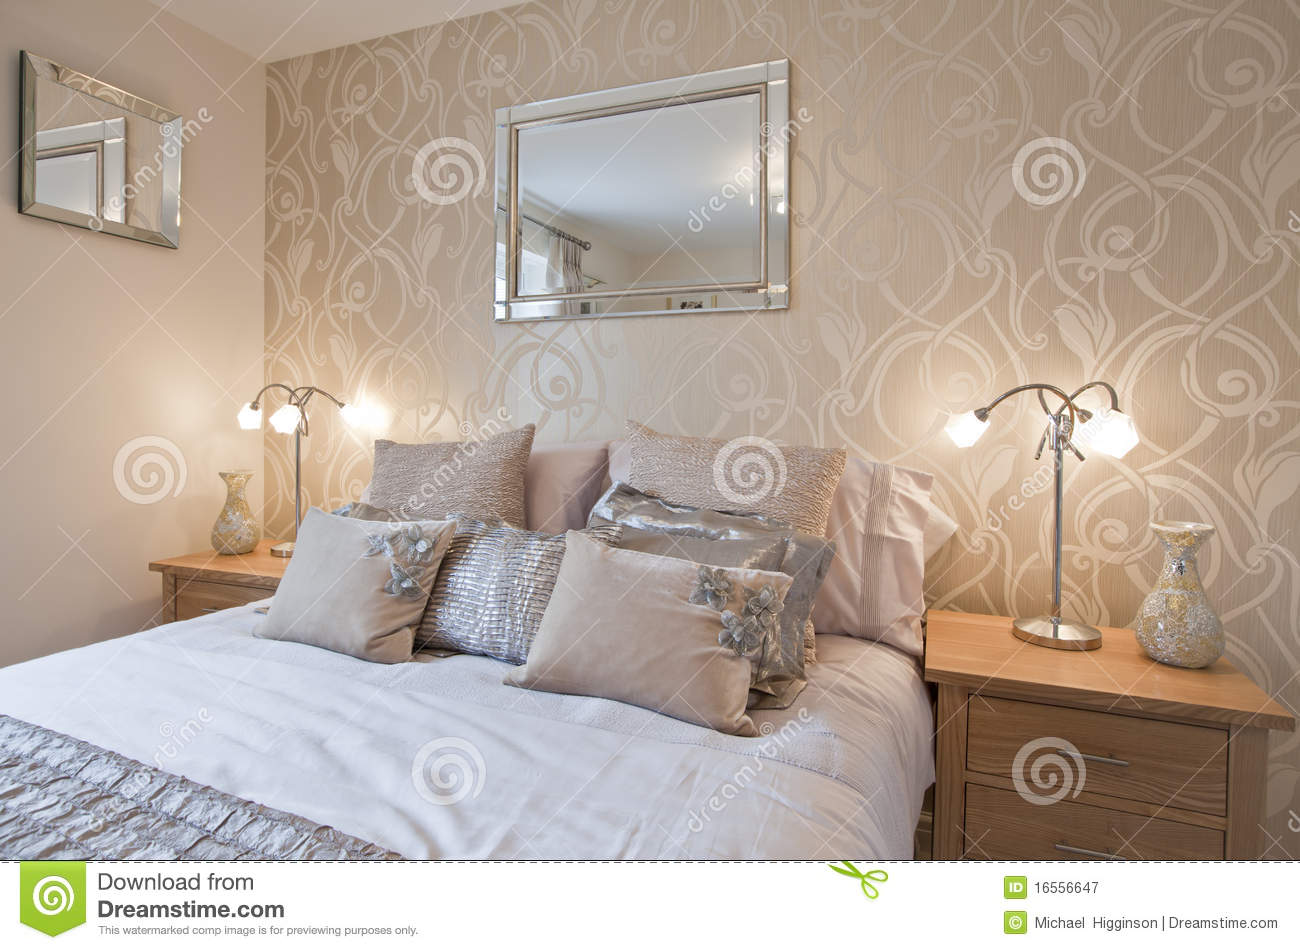 Modern chic bedroom stock image image of opulent for Bedroom ideas modern chic